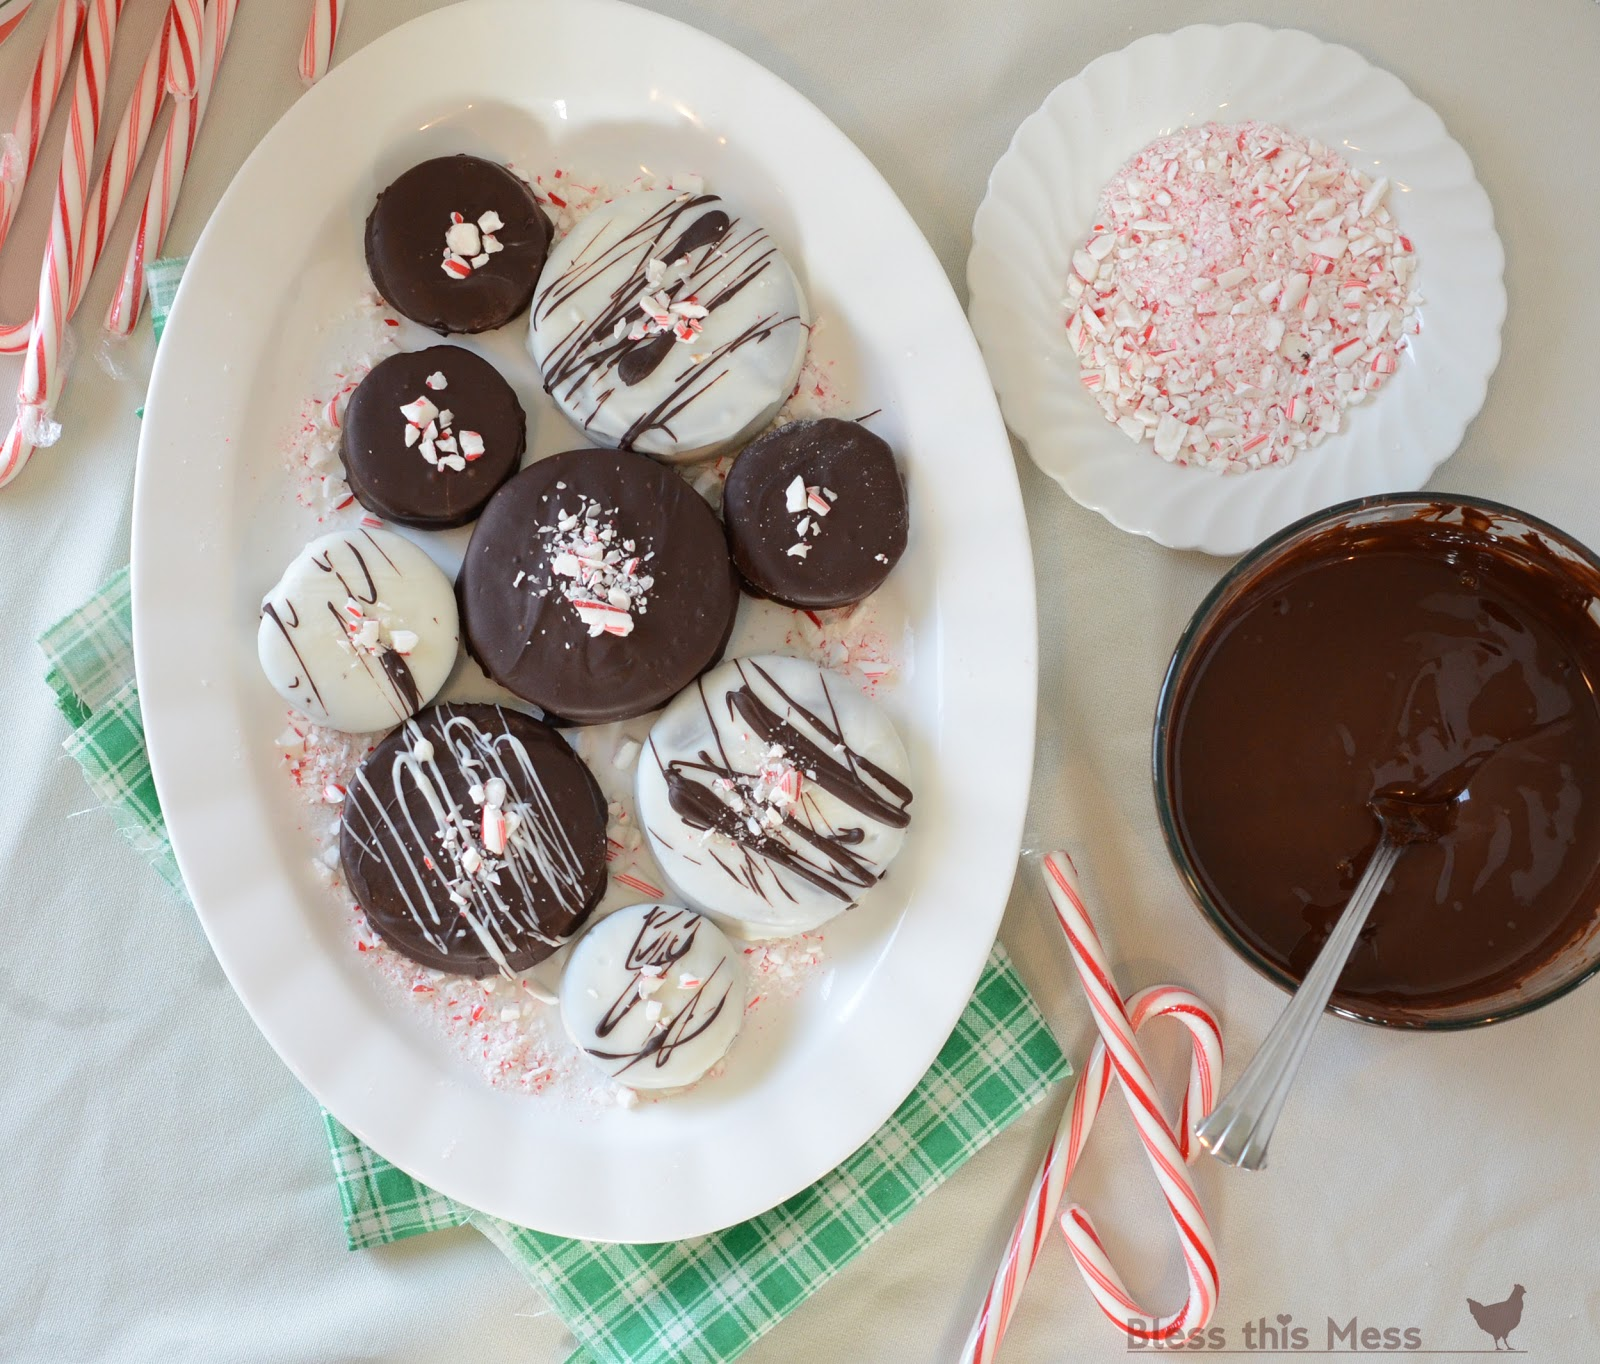 Double Dark Candy Cane Crunch Cookies Bless This Mess